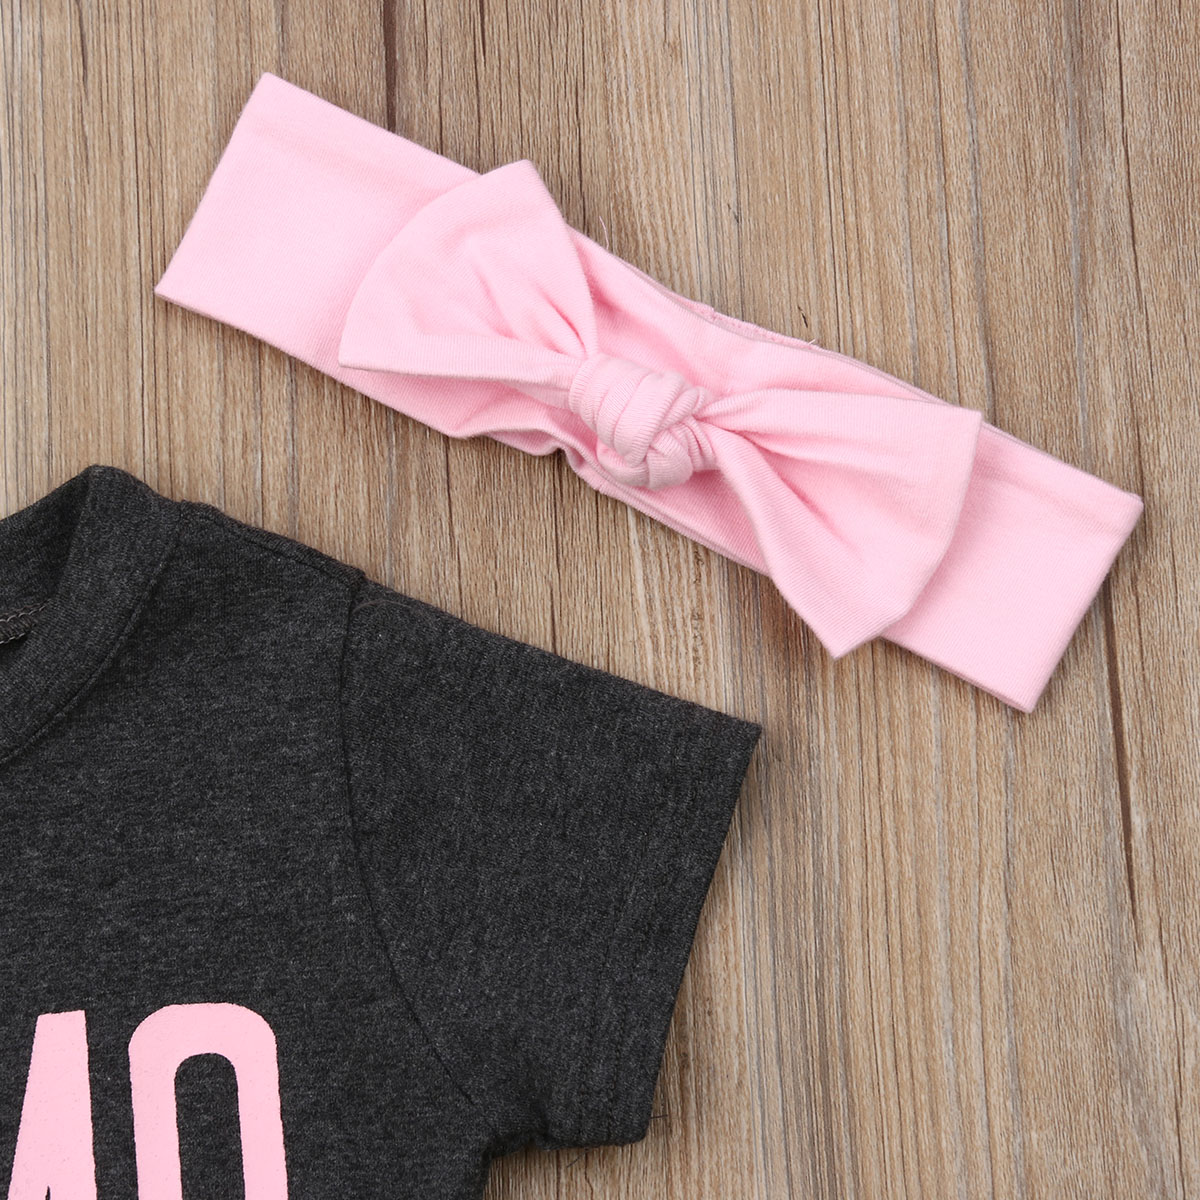 Newborn Toddler Kids Baby Girl Gray Letter T shirt Tops Belted Pink Leaves Short Pants Bowknot Headband 3PCS Outfits Clothes Set in Clothing Sets from Mother Kids